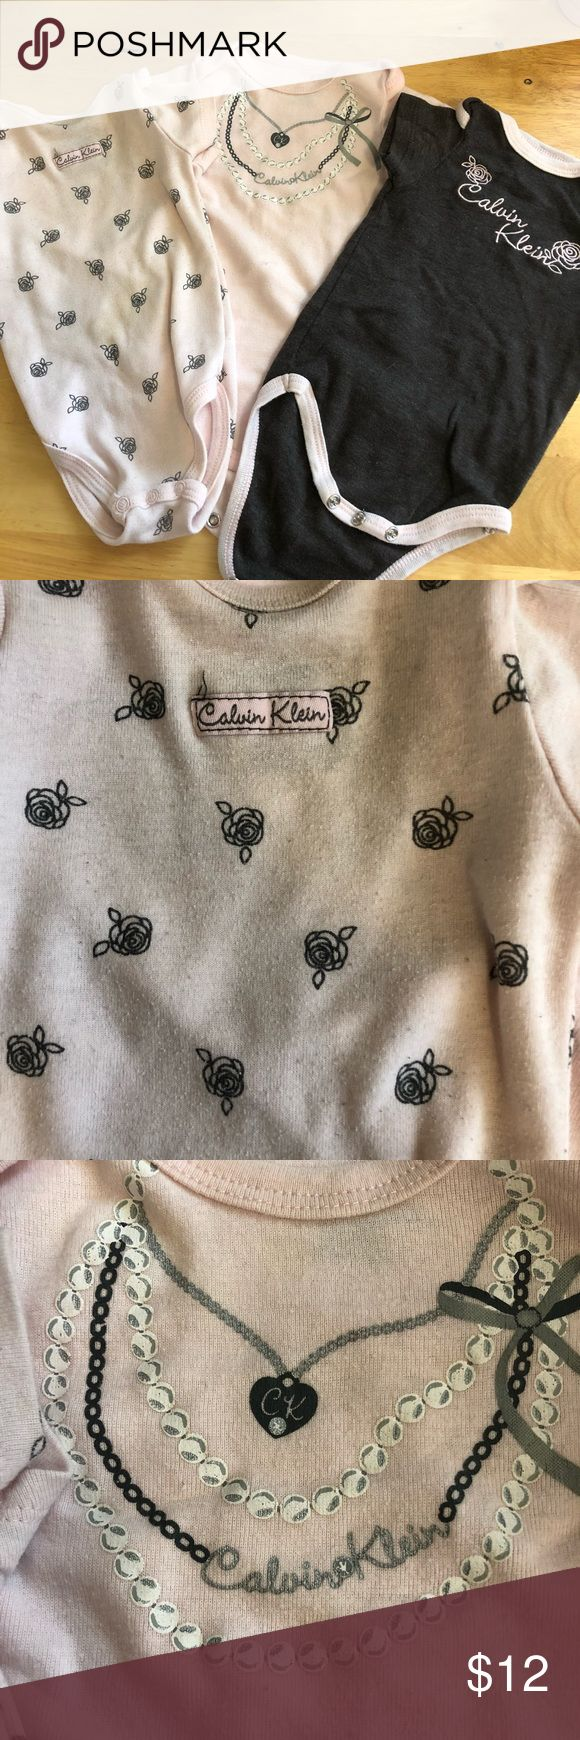 Calvin Klein 3-6 month baby girl bundle Baby girl clothes size 3-6 month  Calvin Klein brand  3 onesies  2 outfits with shirt and skirt/pants  No stains  Pet/smoke free home Calvin Klein Matching Sets